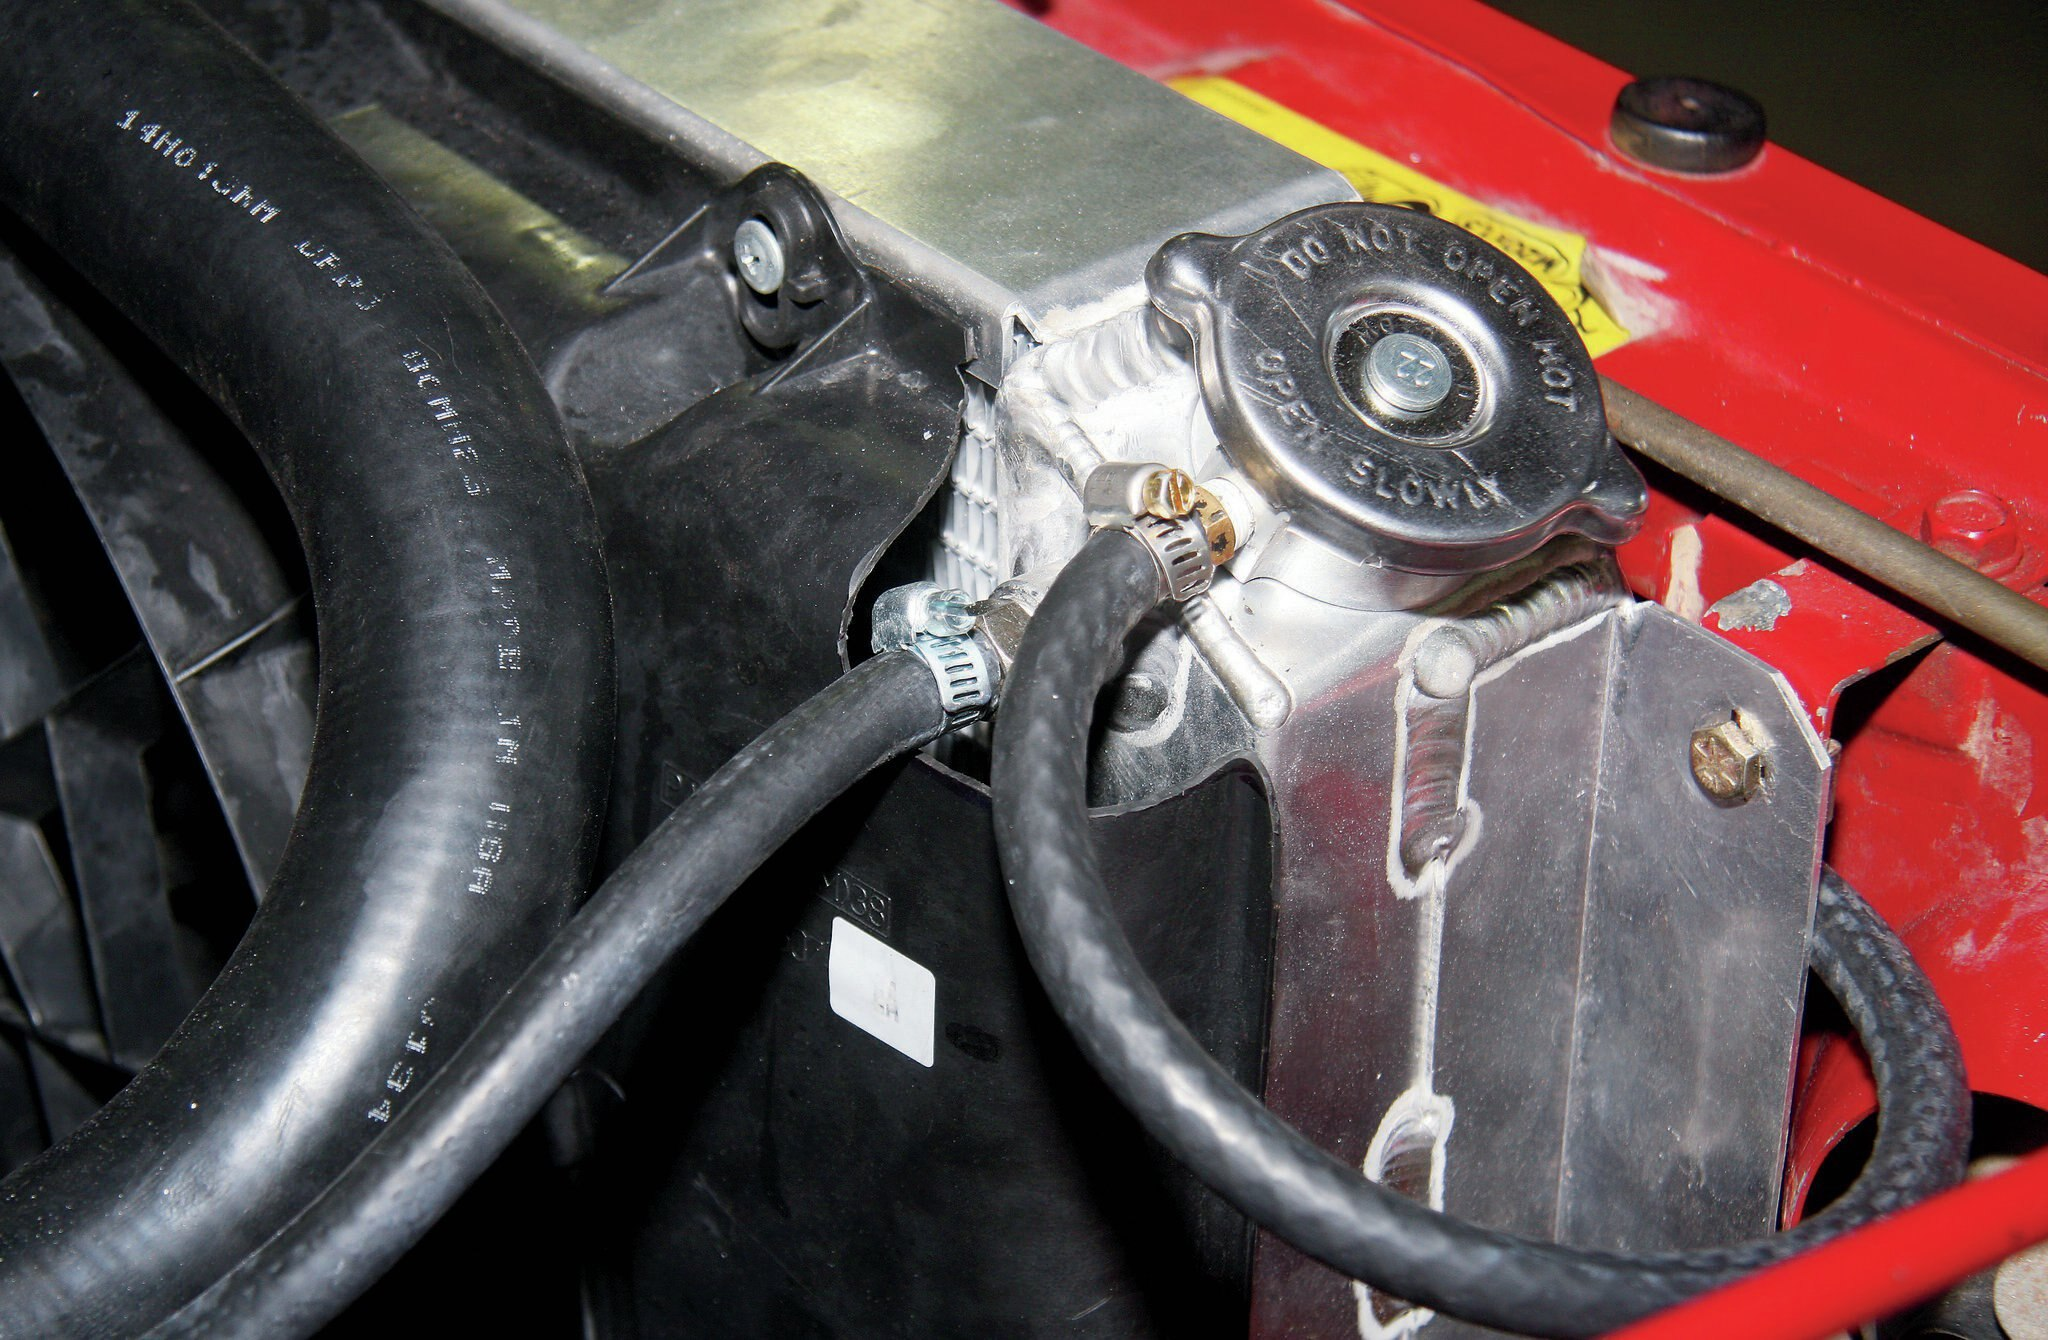 Near the radiator cap, the top hose was routed to the factory overflow bottle. The lower hose is the steam line that connects to the throttle body on these engines. The steam line is important on GM LS engines and is used to purge air from the engine coolant system and to route coolant to the throttle body.